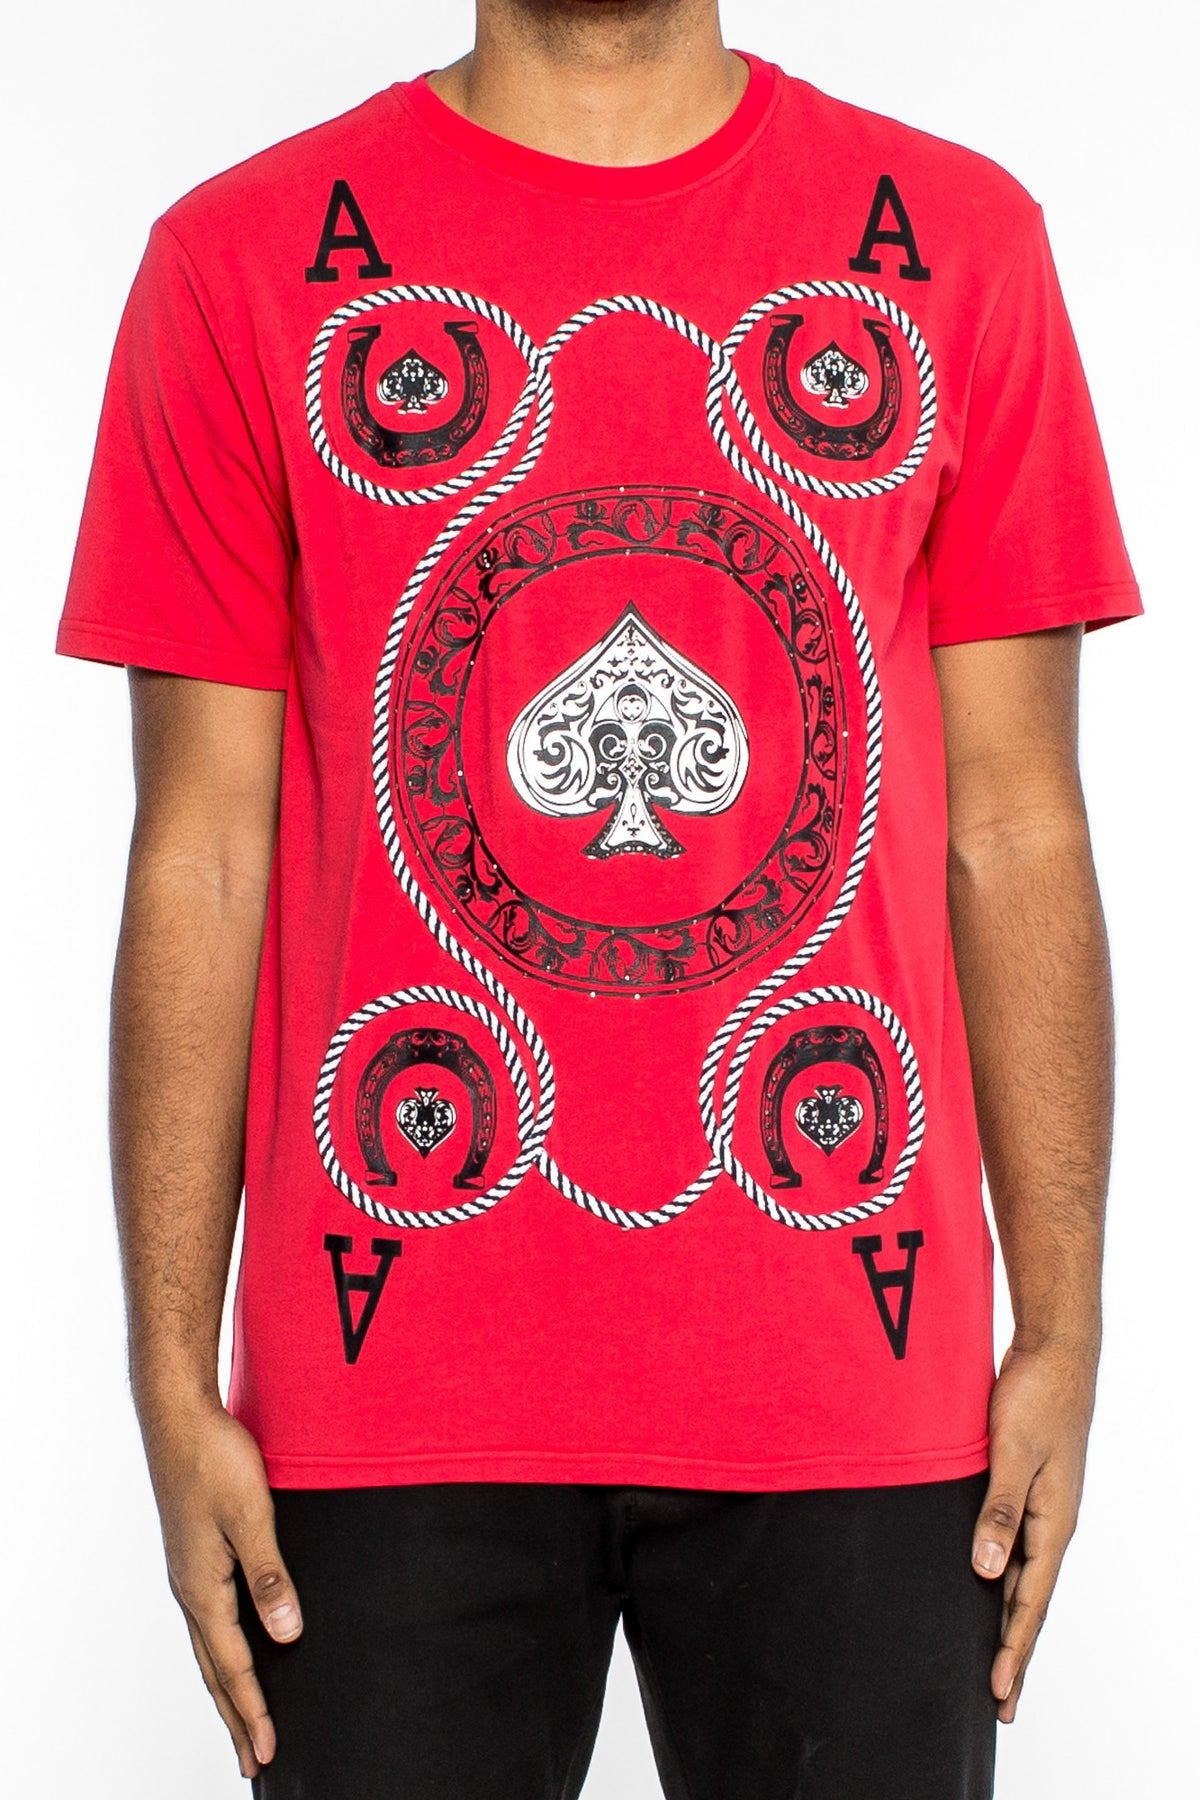 Aces Of Spades Tee (H1051443) RED - cosign1975